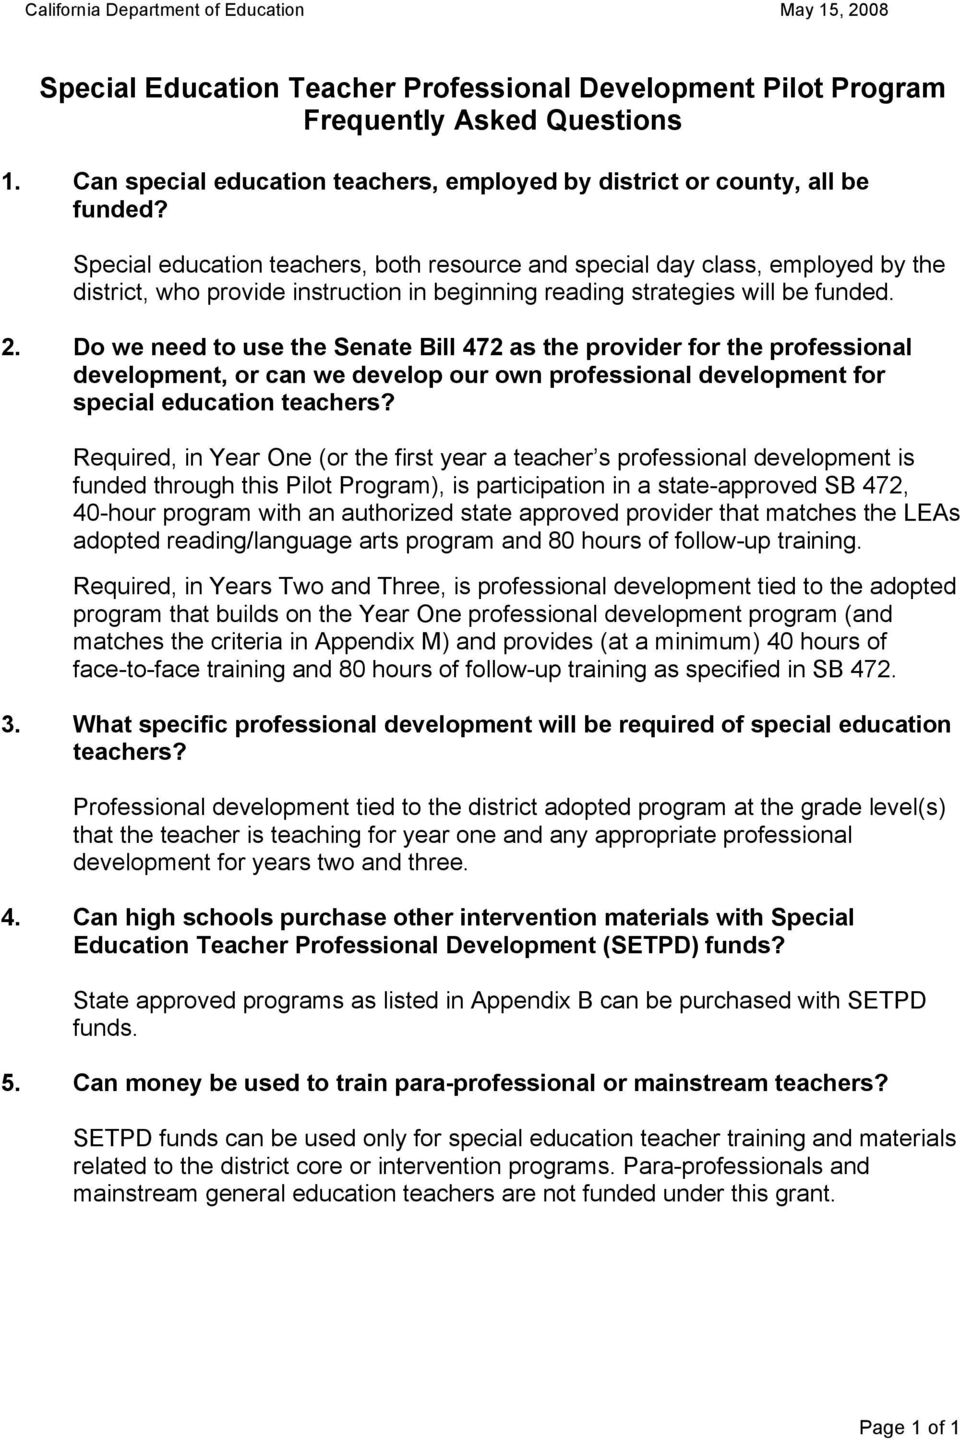 Do we need to use the Senate Bill 472 as the provider for the professional development, or can we develop our own professional development for special education teachers?